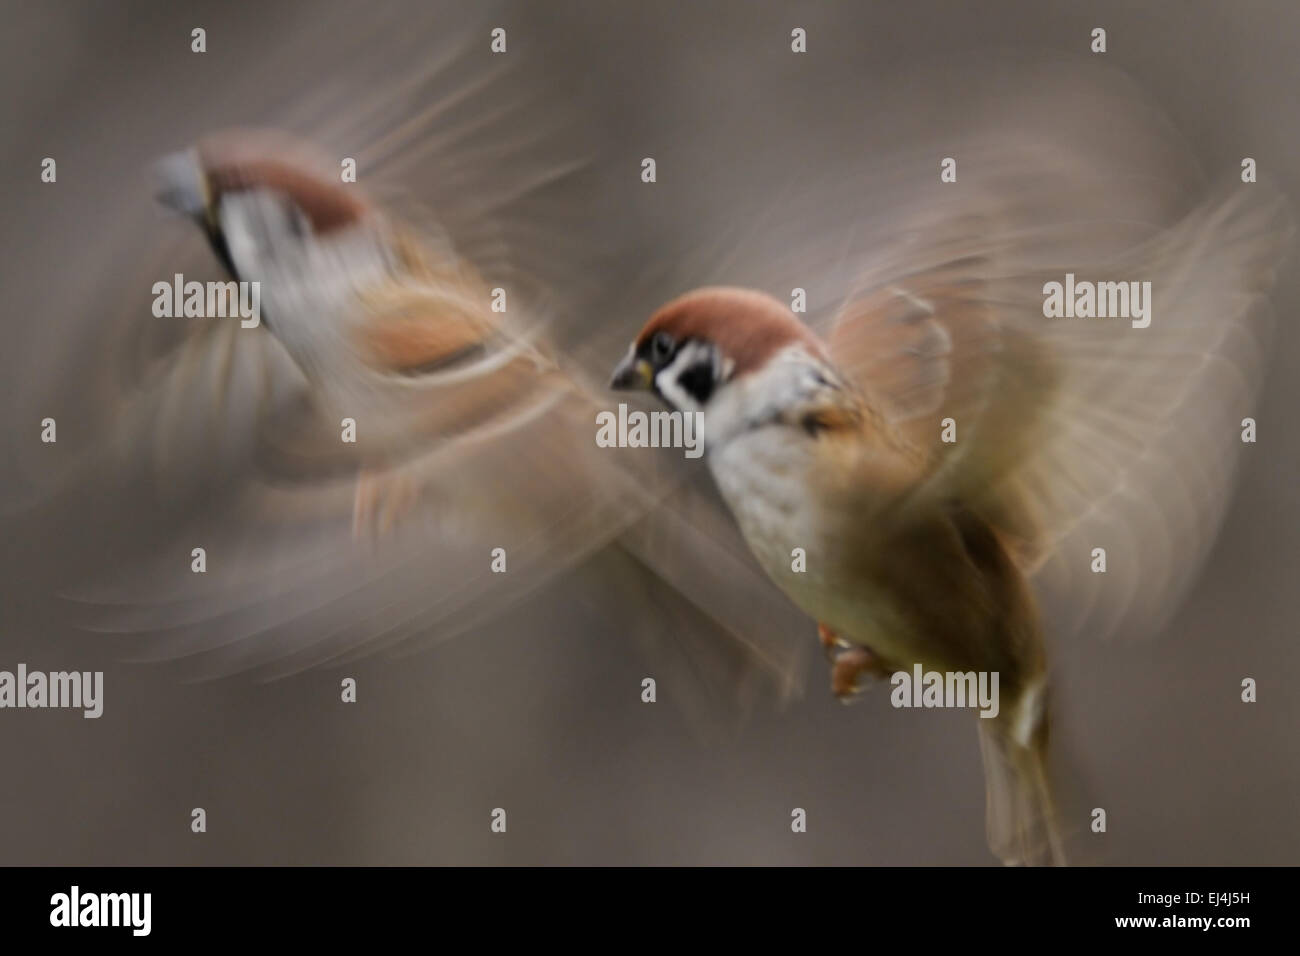 Flying blurred Tree Sparrows - Stock Image